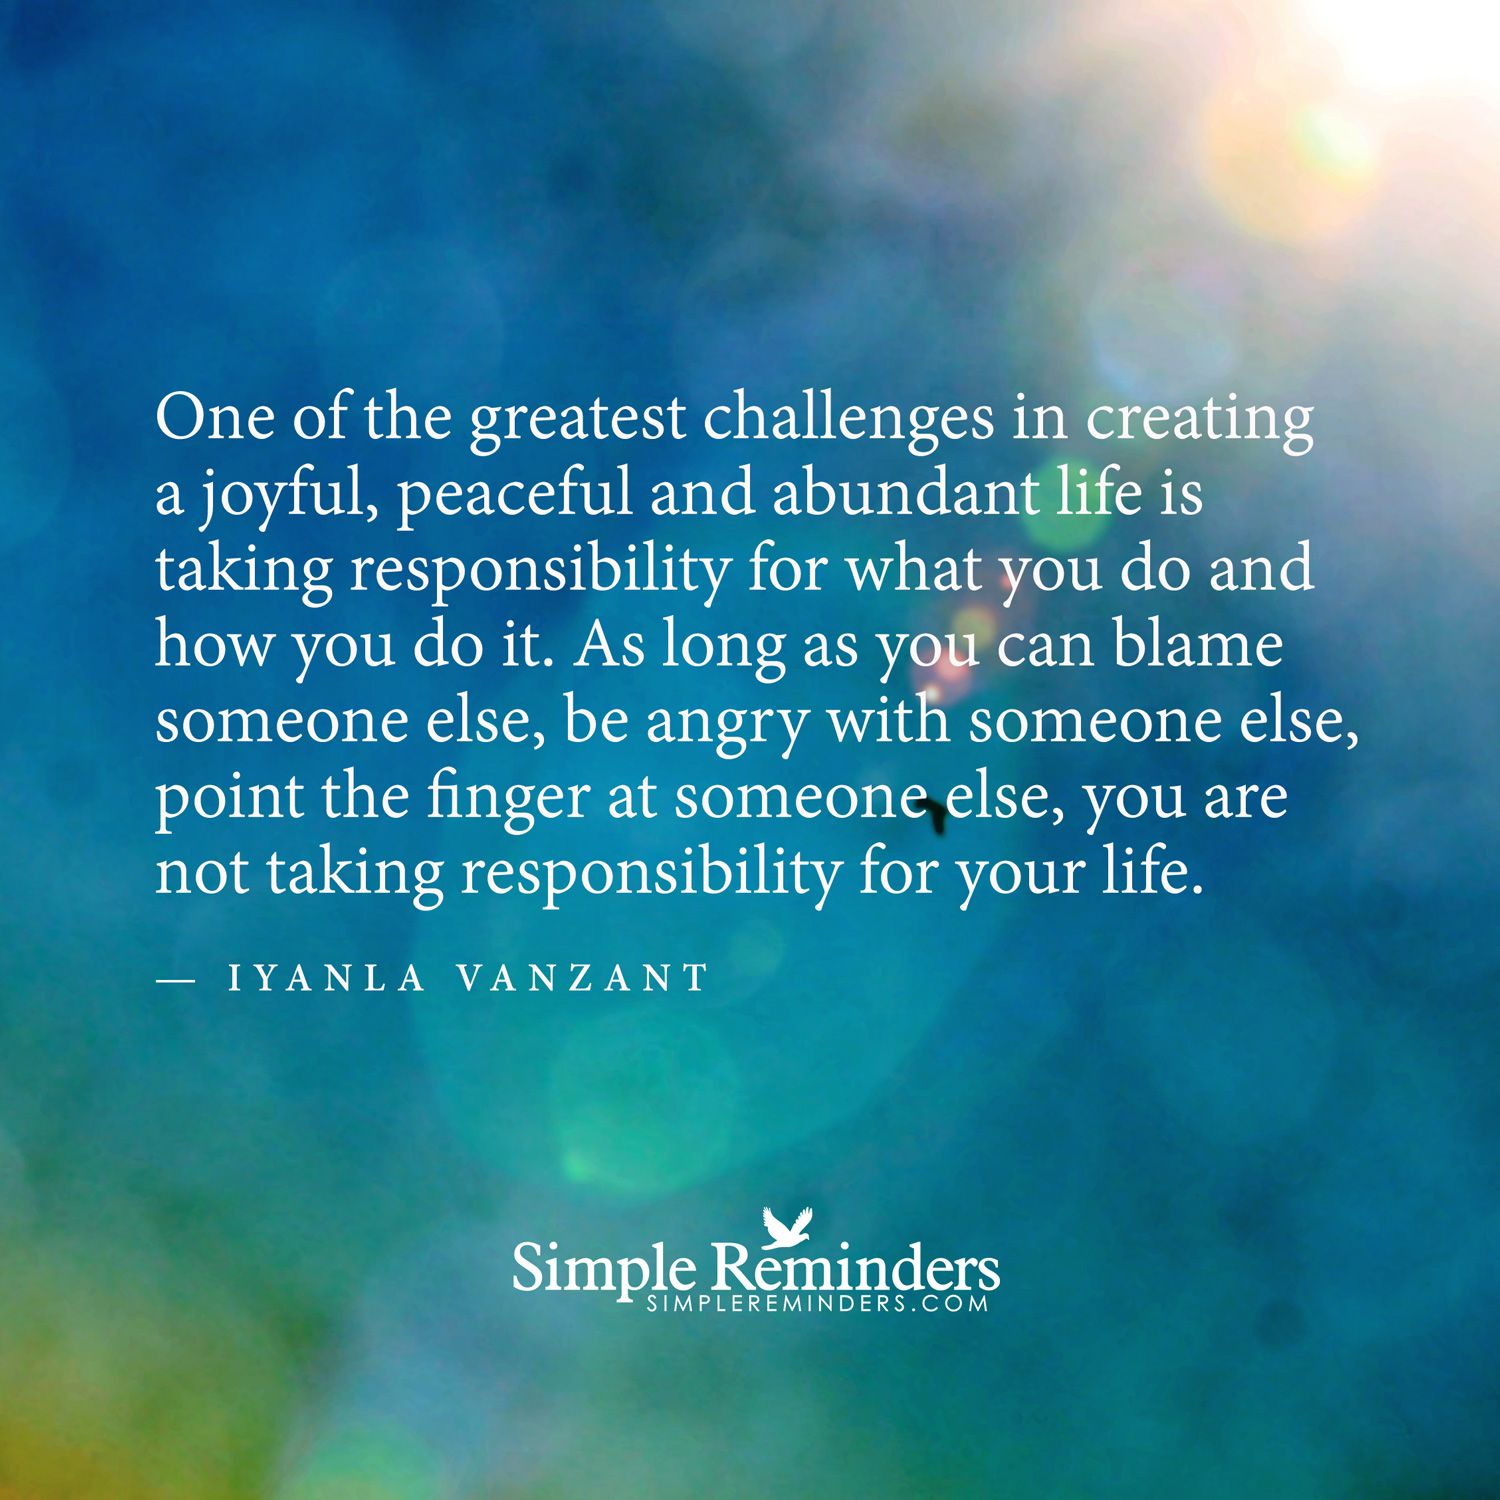 One of the greatest challenges in creating a joyful